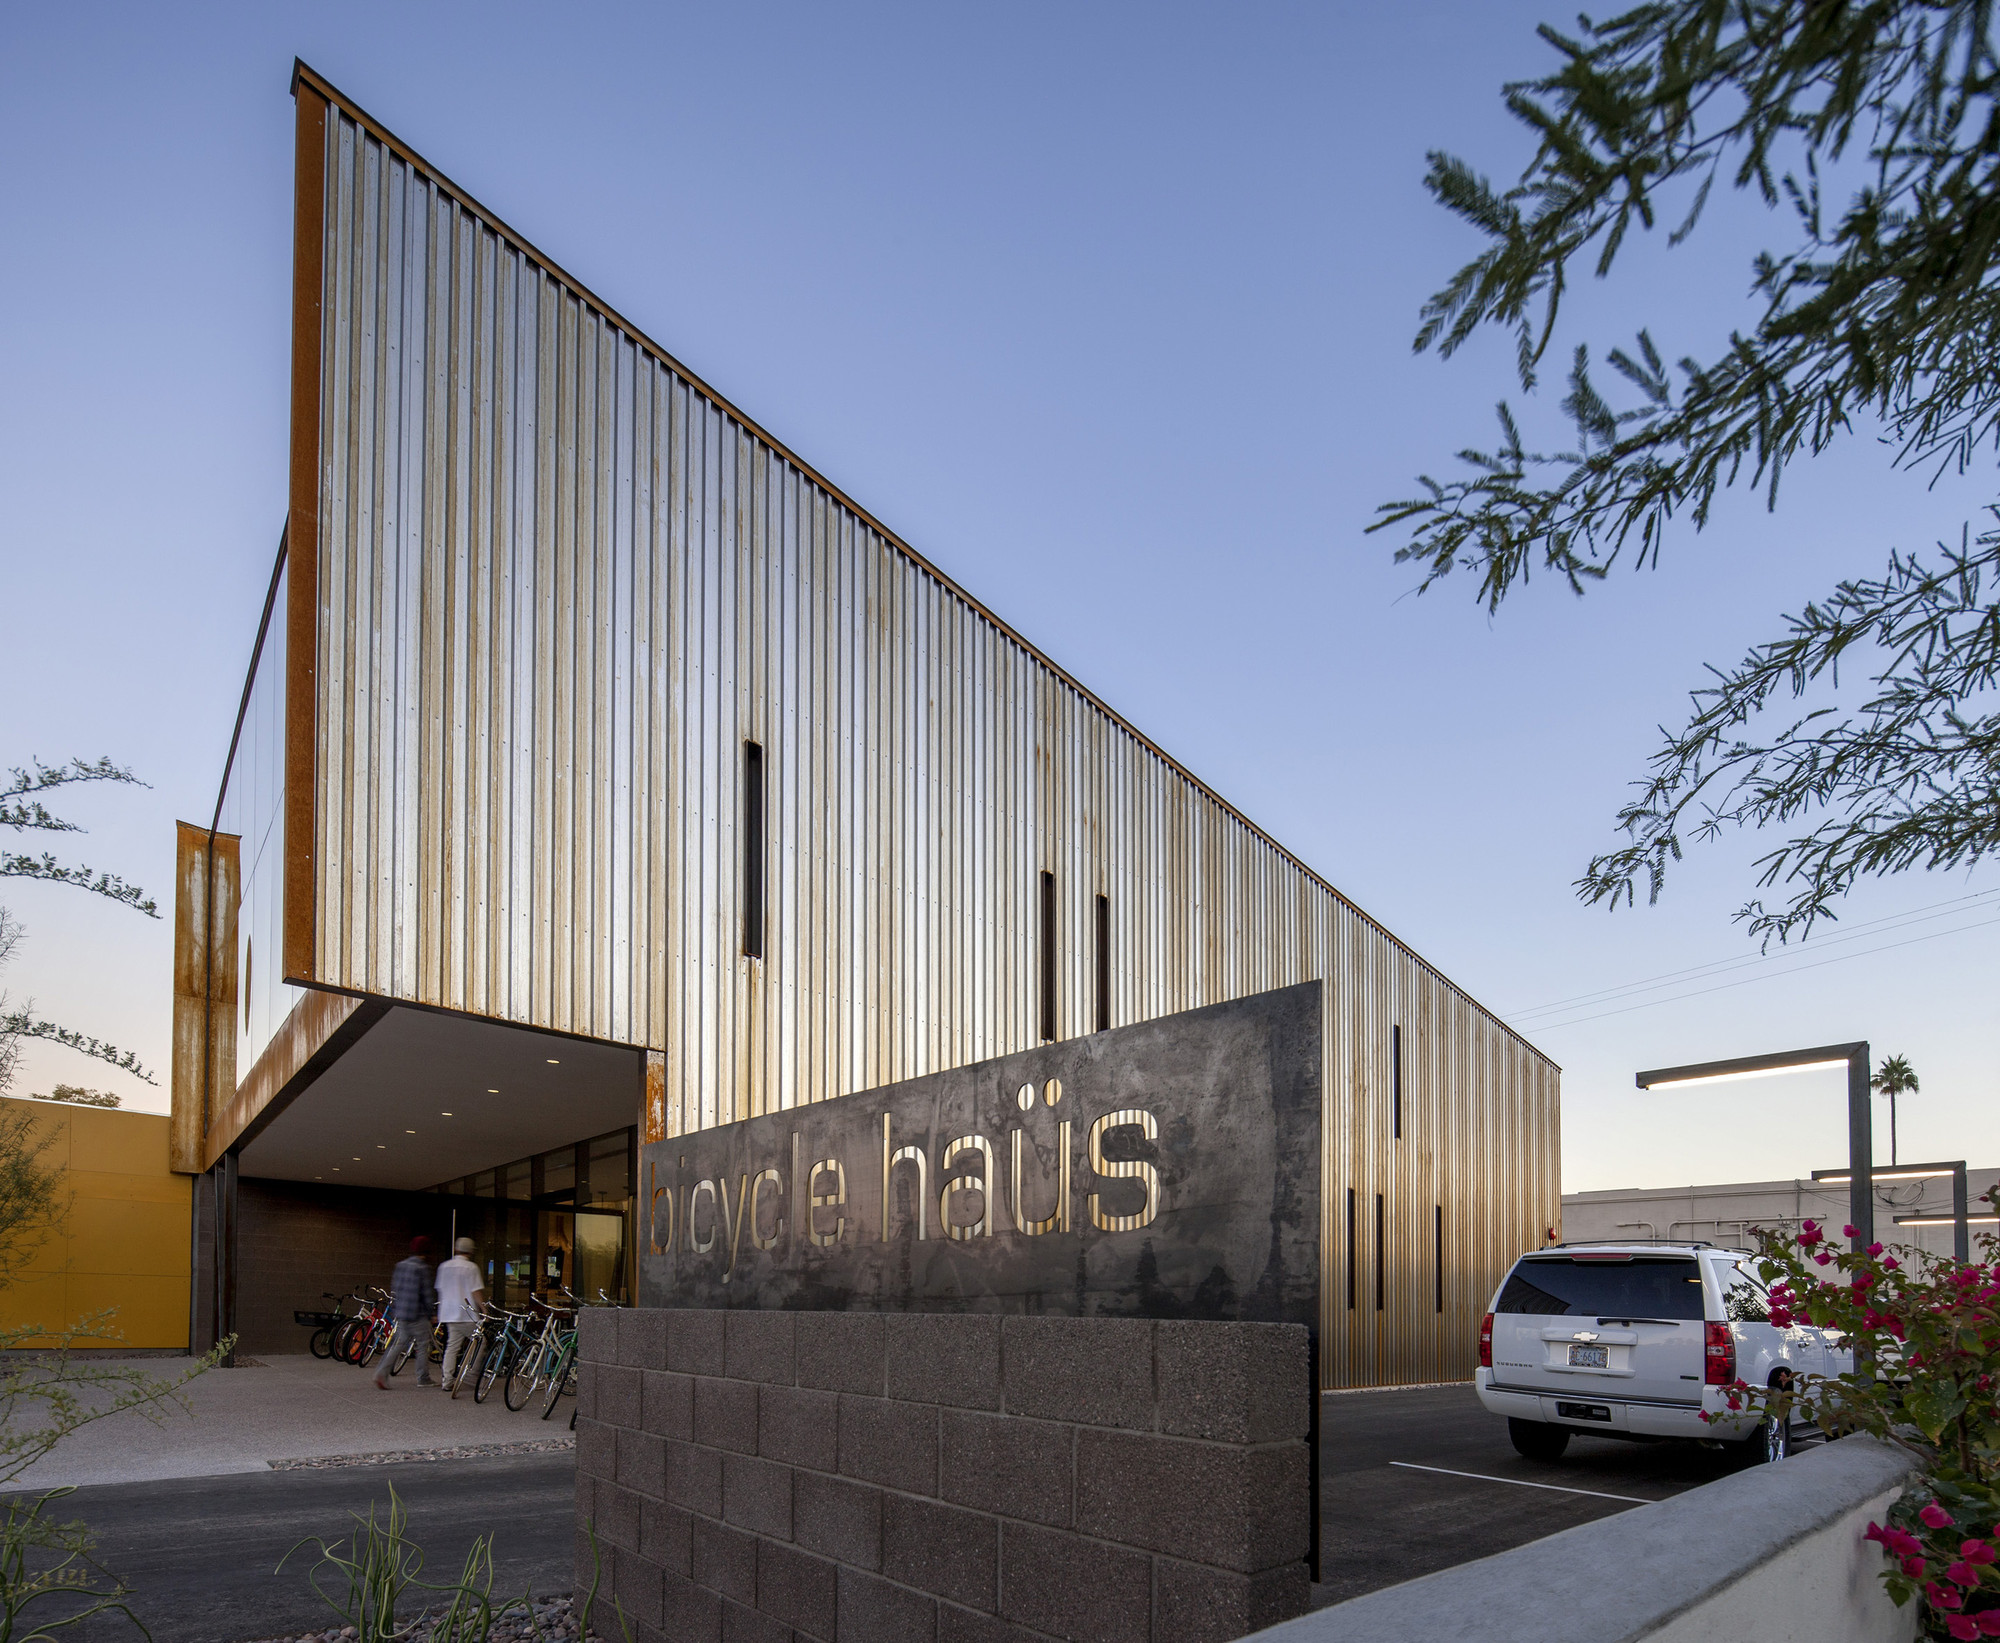 Bicycle Haüs / Debartolo Architects, © Timmerman Photography